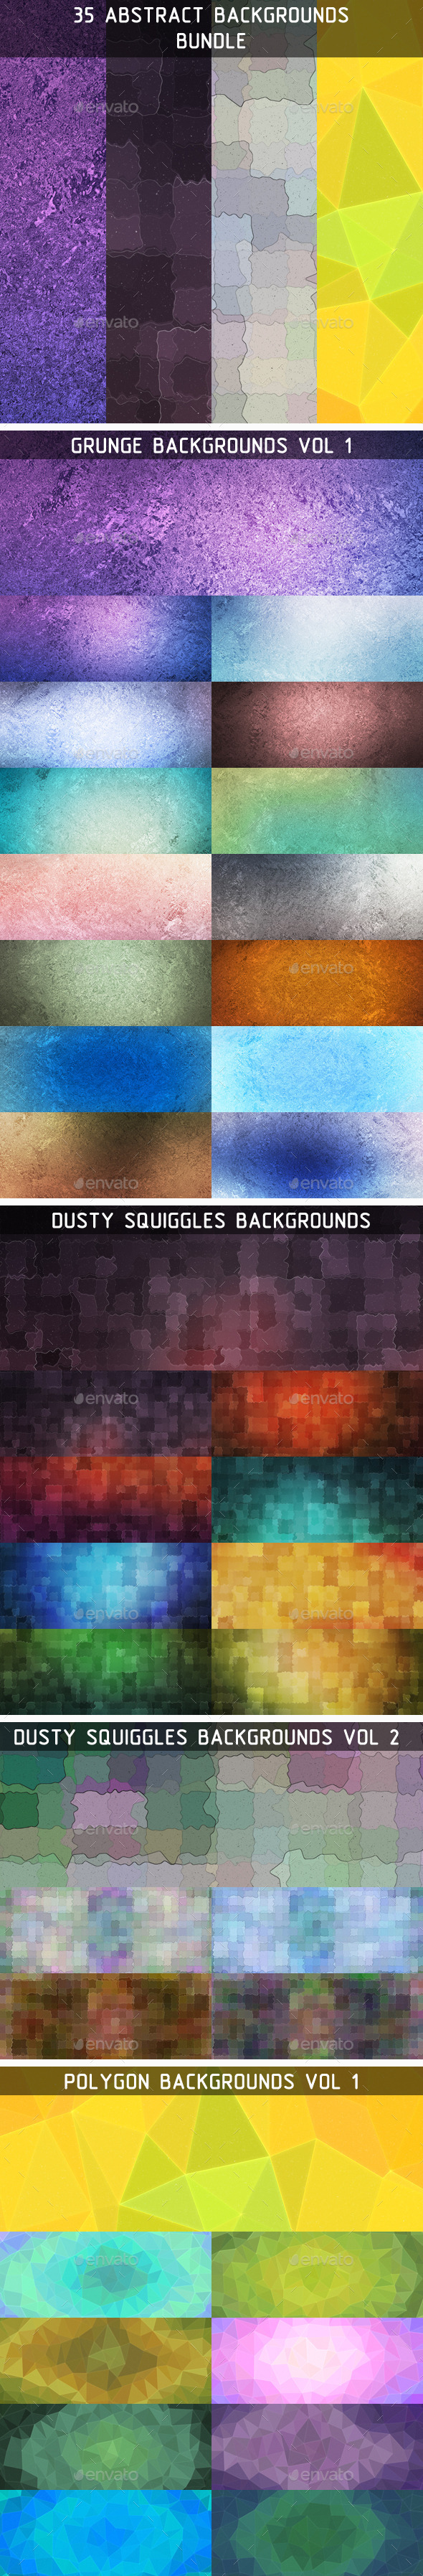 GraphicRiver 35 Abstract Backgrounds Bundle 11424036